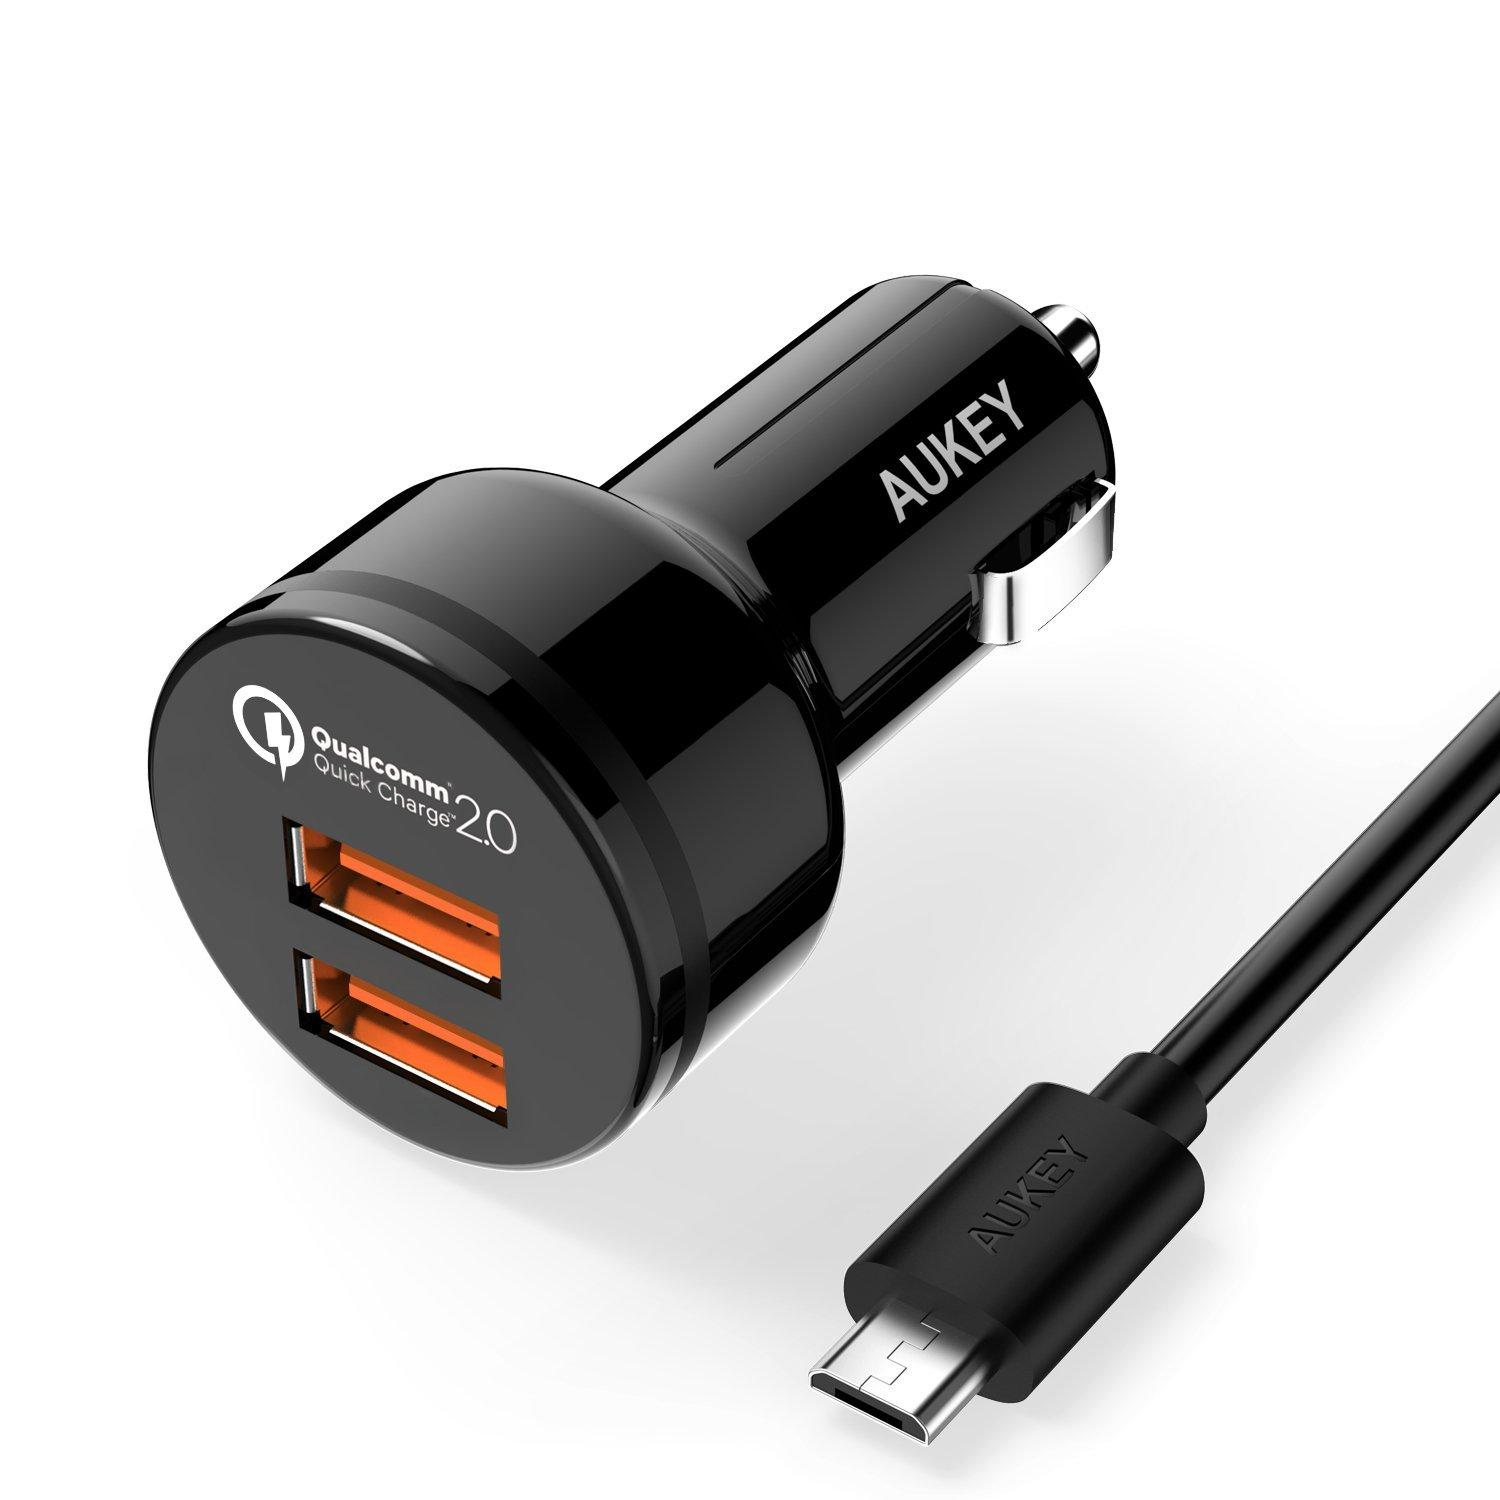 Aukey Quick Charge 2.0 36W 2-Port Car Charger + 3.3 Ft. Micro USB Cable